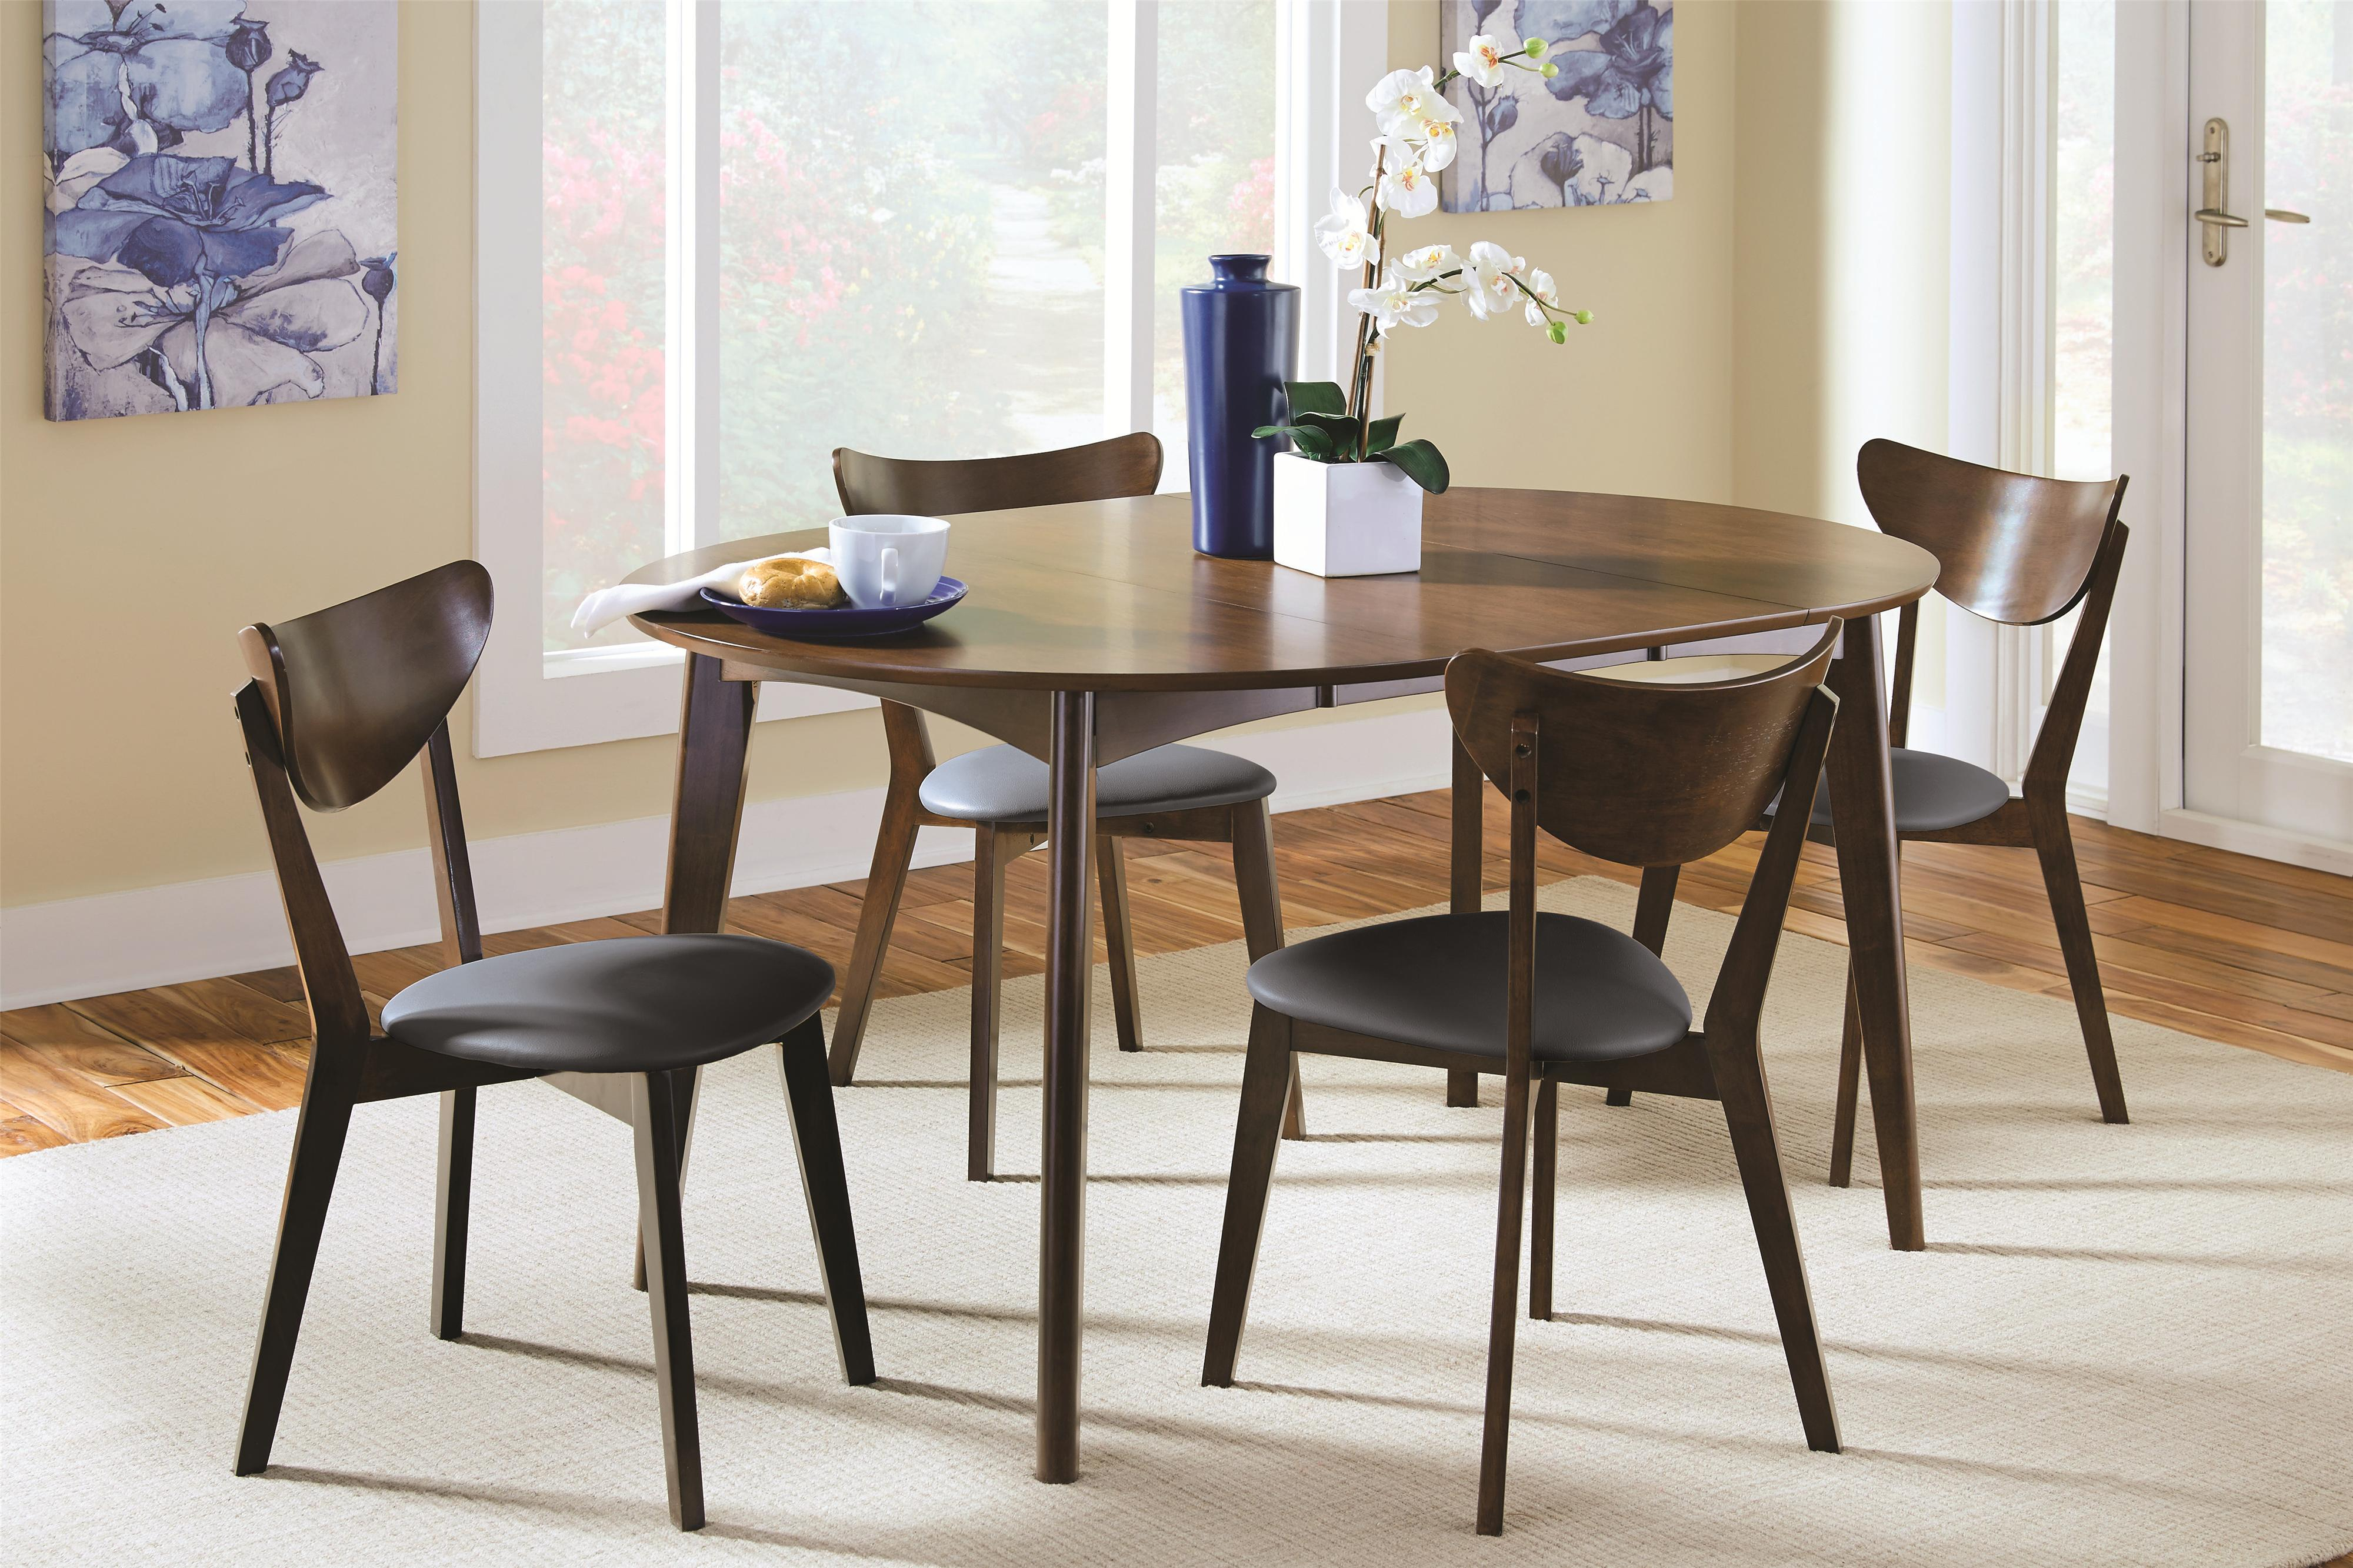 Coaster Malone Mid-century Modern Casual Dining Table - Coaster Fine Furniture & Coaster Malone Mid-century Modern Casual Dining Table - Coaster Fine ...